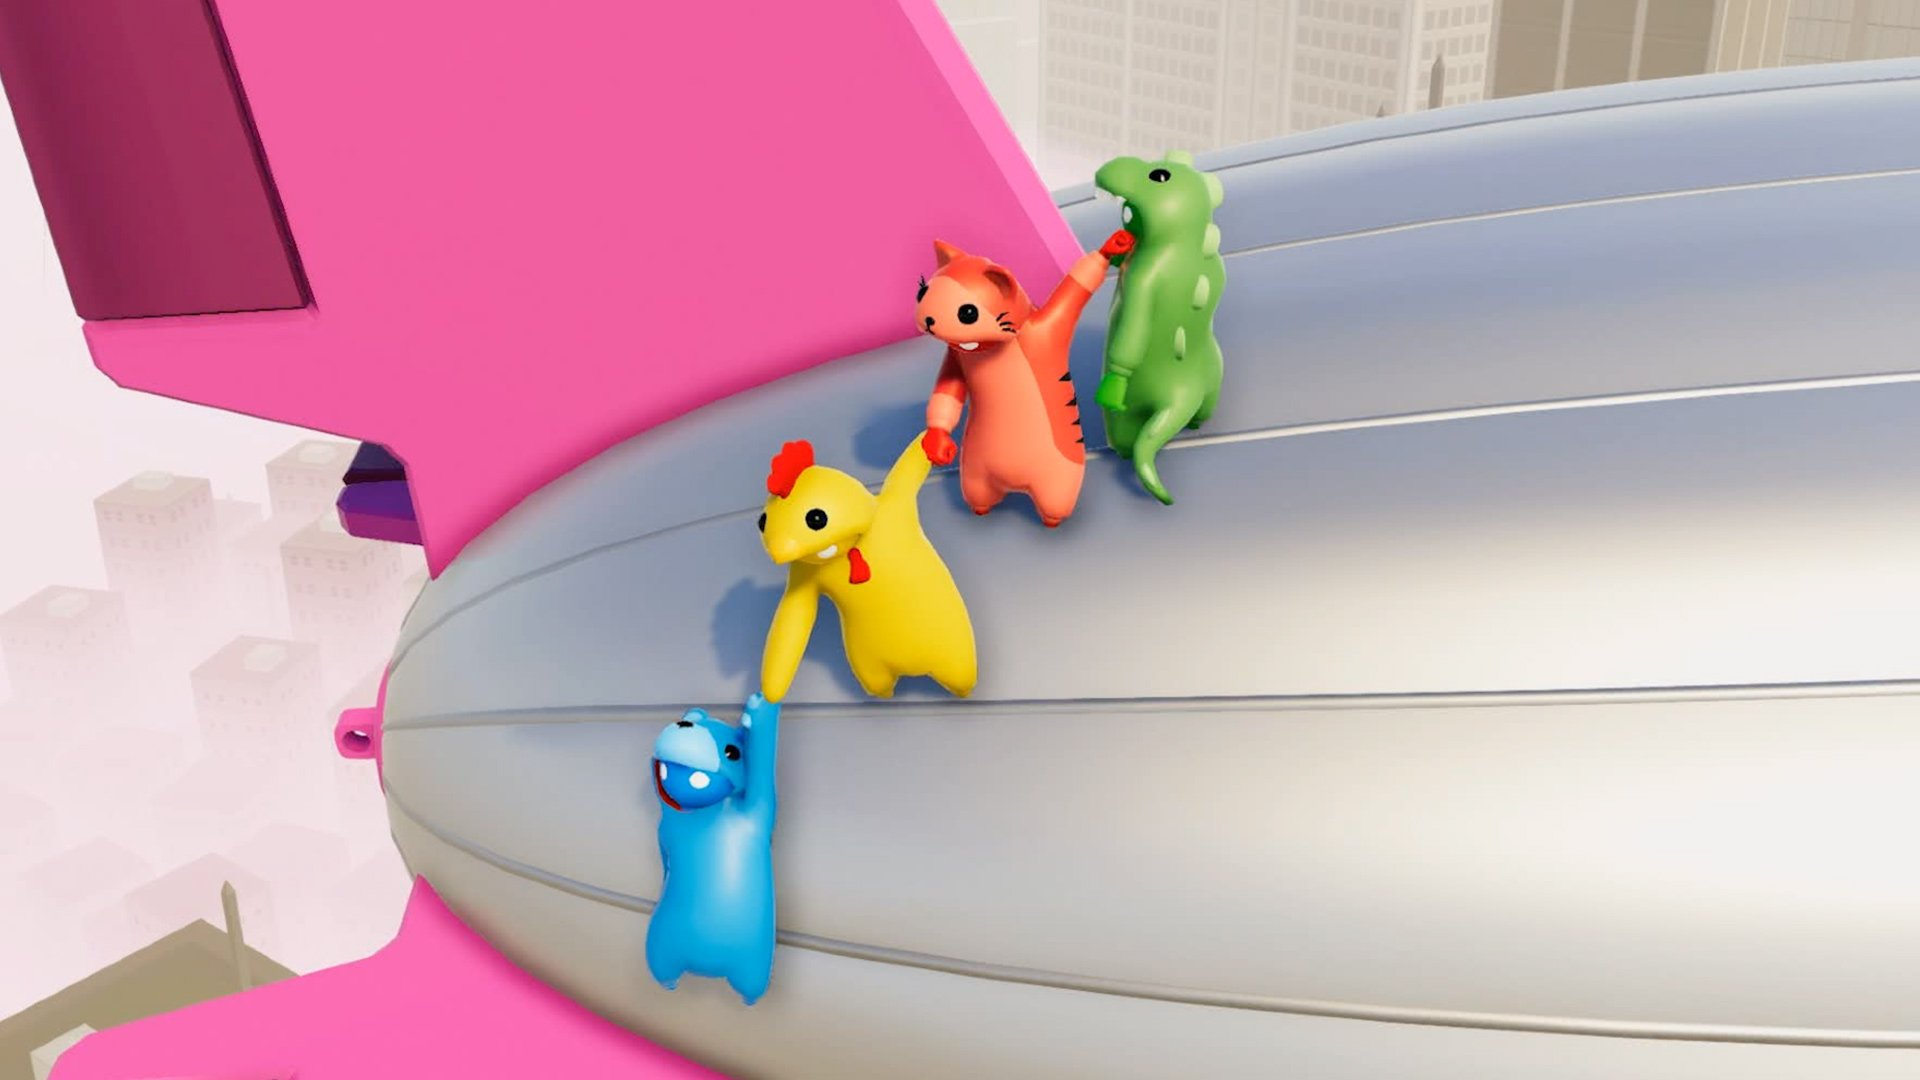 Party brawler Gang Beasts hits PS4 in two weeks screenshot